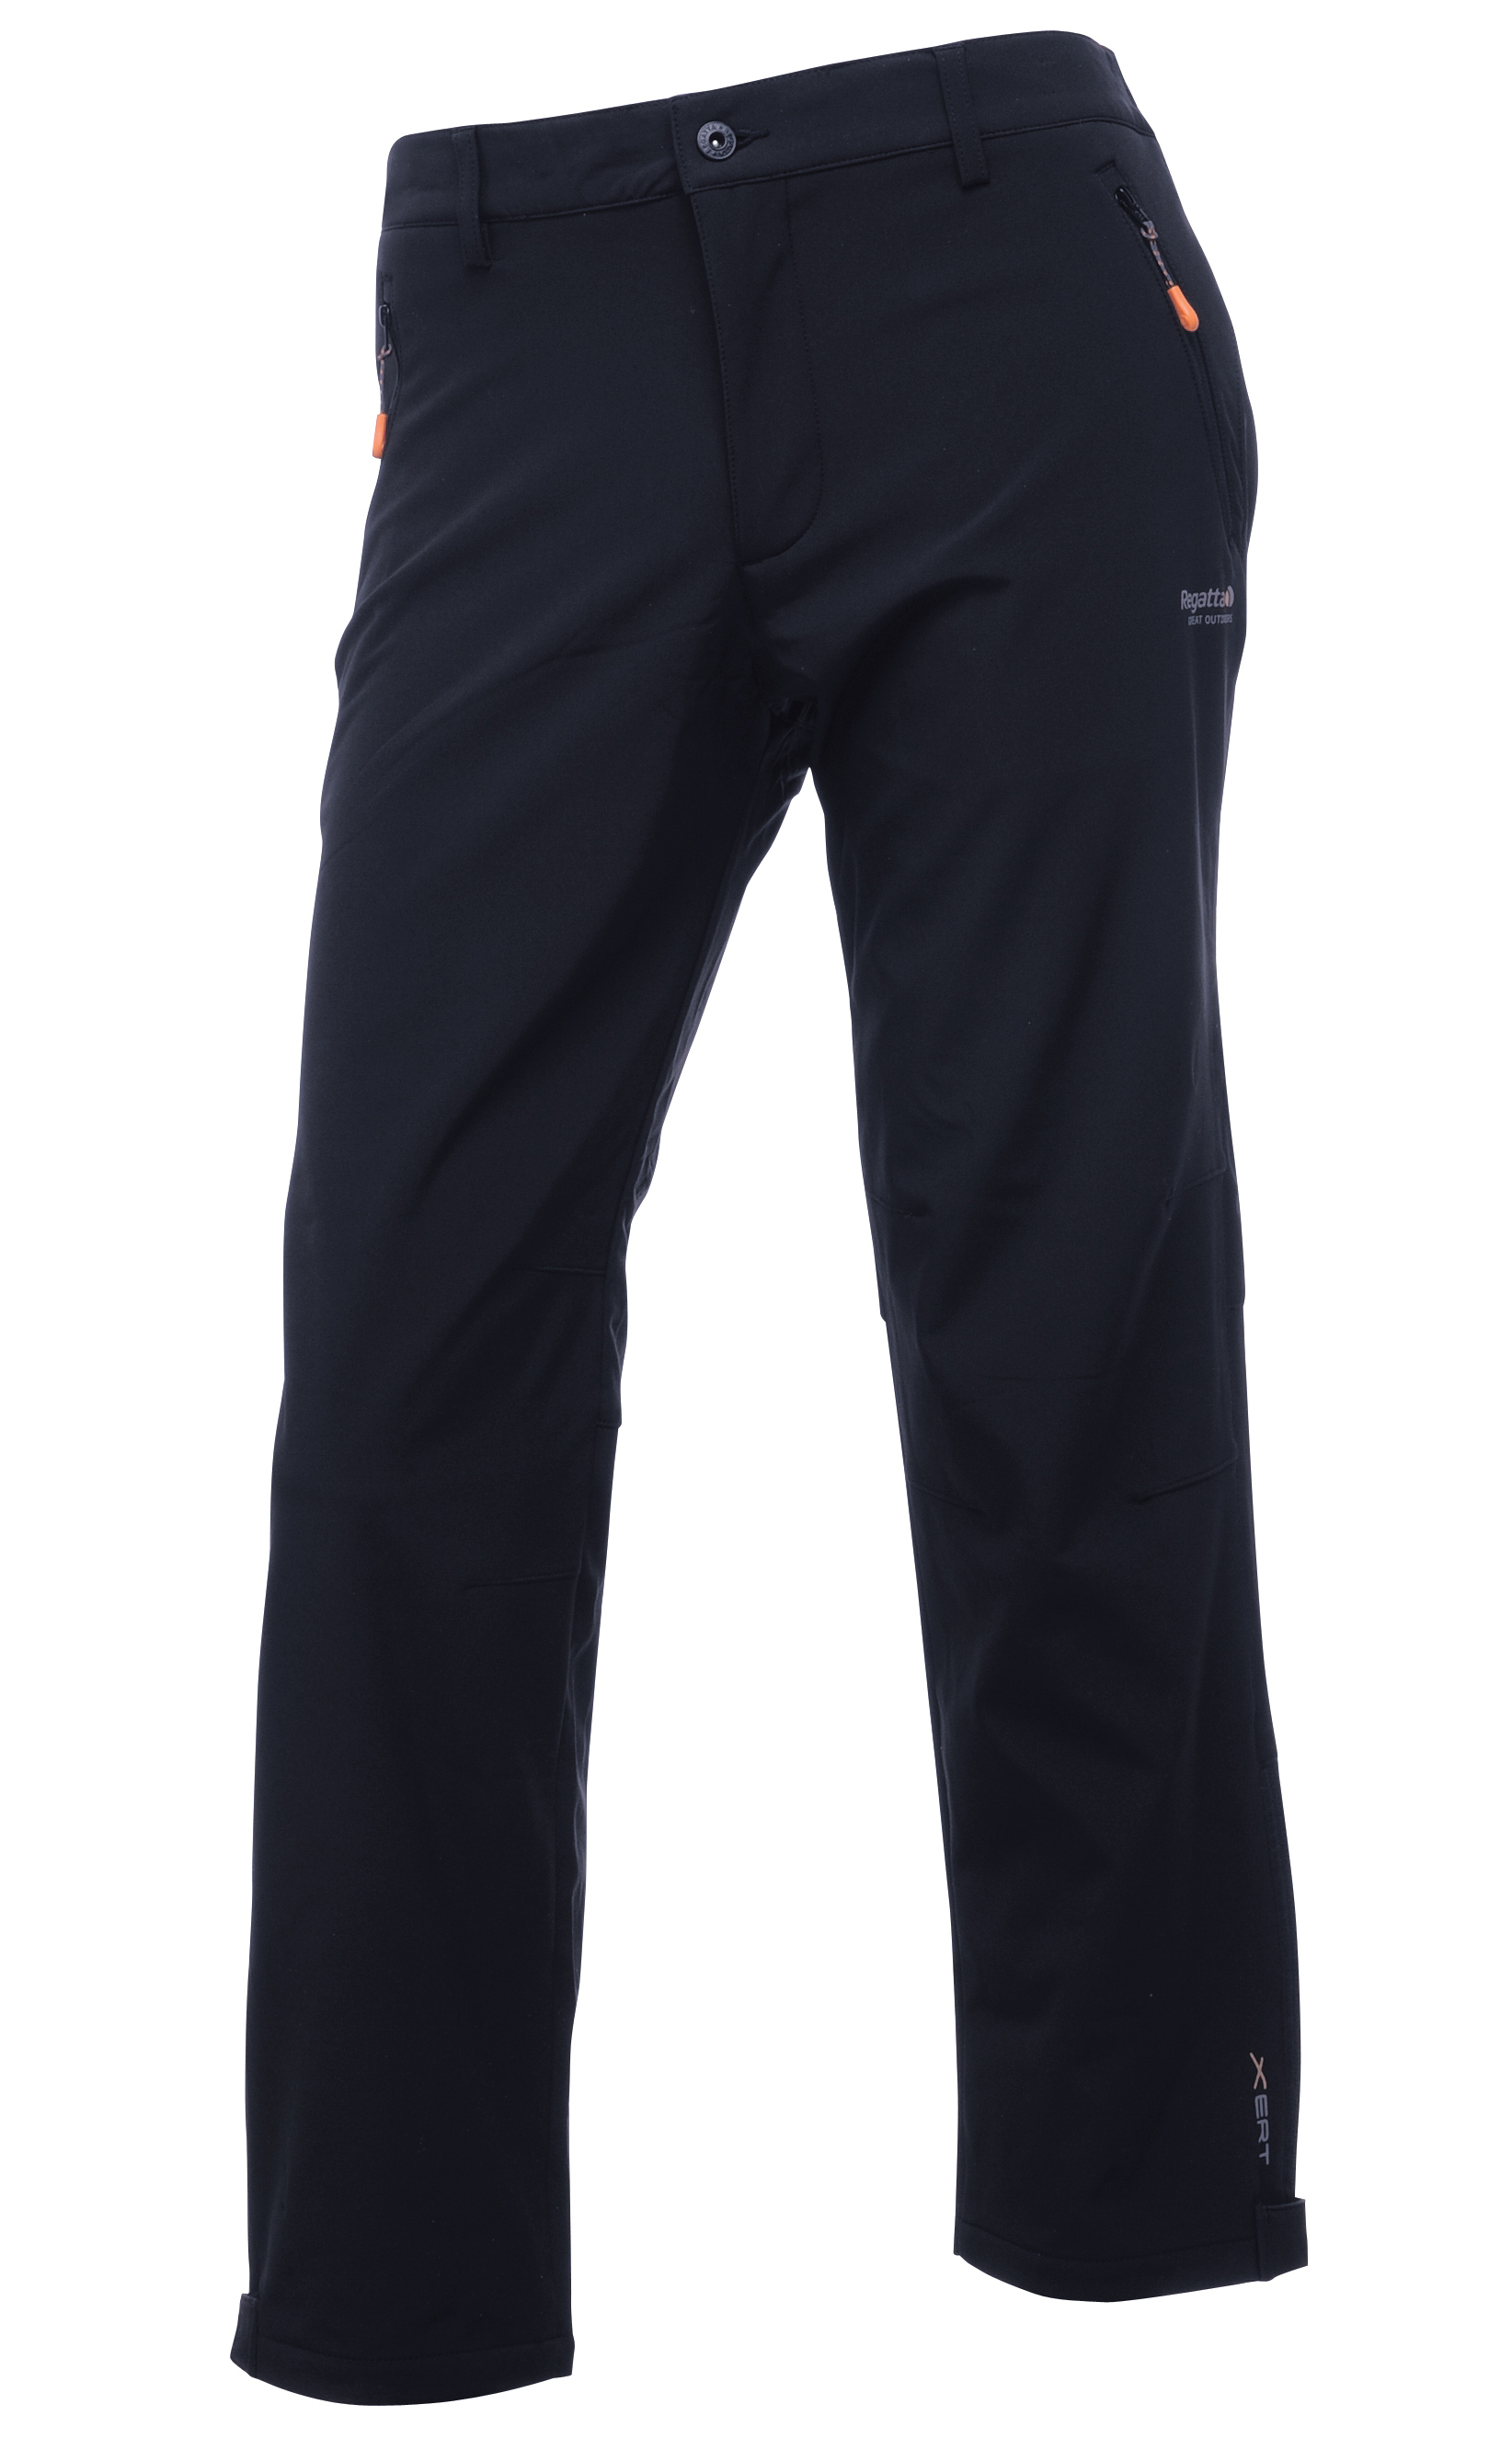 Regatta Geo Softshell Women's Trousers